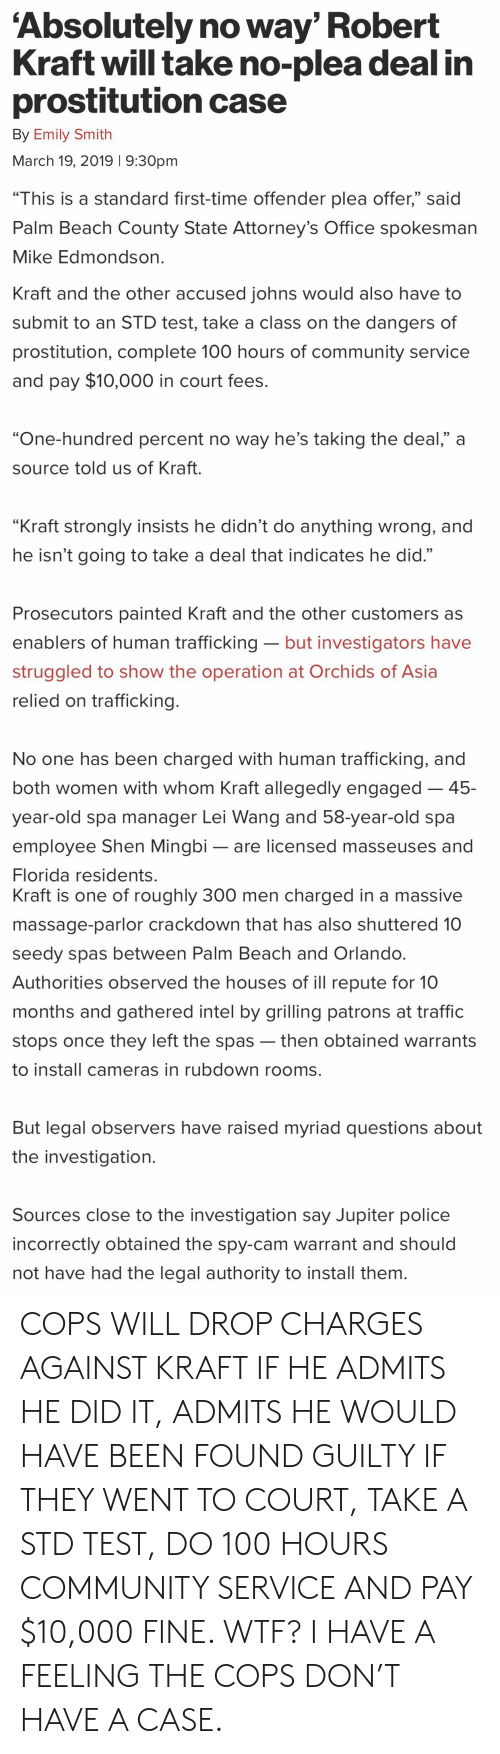 "Anaconda, Community, and Massage: Absolutely no way' Robert  Kraft will take no-plea deal in  prostitution case  By Emily Smith  March 19, 2019 1 9:30pm  ""This is a standard first-time offender plea offer,"" said  Palm Beach County State Attorney's Office spokesman  Mike Edmondson  Kraft and the other accused iohns would also have to  submit to an STD test, take a class on the dangers of  prostitution, complete 100 hours of community service  and pay $10,000 in court fees.  ""One-hundred percent no way he's taking the deal,"" a  source told us of Kraft.  ""Kraft strongly insists he didn't do anything wrong, and  he isn't going to take a deal that indicates he did.""  Prosecutors painted Kraft and the other customers a:s  enablers of human trafficking- but investigators have  struggled to show the operation at Orchids of Asia  relied on trafficking.  No one has been charged with human trafficking, and  both women with whom Kraft allegedly engaged-45-  year-old spa manager Lei Wang and 58-year-old spa  employee Shen Mingbi- are licensed masseuses and  Florida residents.  Kraft is one of roughly 300 men charged in a massive  massage-parlor crackdown that has also shuttered 10  seedy spas between Palm Beach and Orlando  Authorities observed the houses of ill repute for 10  months and gathered intel by grilling patrons at traffic  stops once they left the spas -then obtained warrants  to install cameras in rubdown rooms.  But legal observers have raised myriad questions about  the investigation.  Sources close to the investigation say Jupiter police  incorrectly obtained the spy-cam warrant and should  not have had the legal authority to install them COPS WILL DROP CHARGES AGAINST KRAFT IF HE ADMITS HE DID IT, ADMITS HE WOULD HAVE BEEN FOUND GUILTY IF THEY WENT TO COURT, TAKE A STD TEST, DO 100 HOURS COMMUNITY SERVICE AND PAY $10,000 FINE. WTF? I HAVE A FEELING THE COPS DON'T HAVE A CASE."